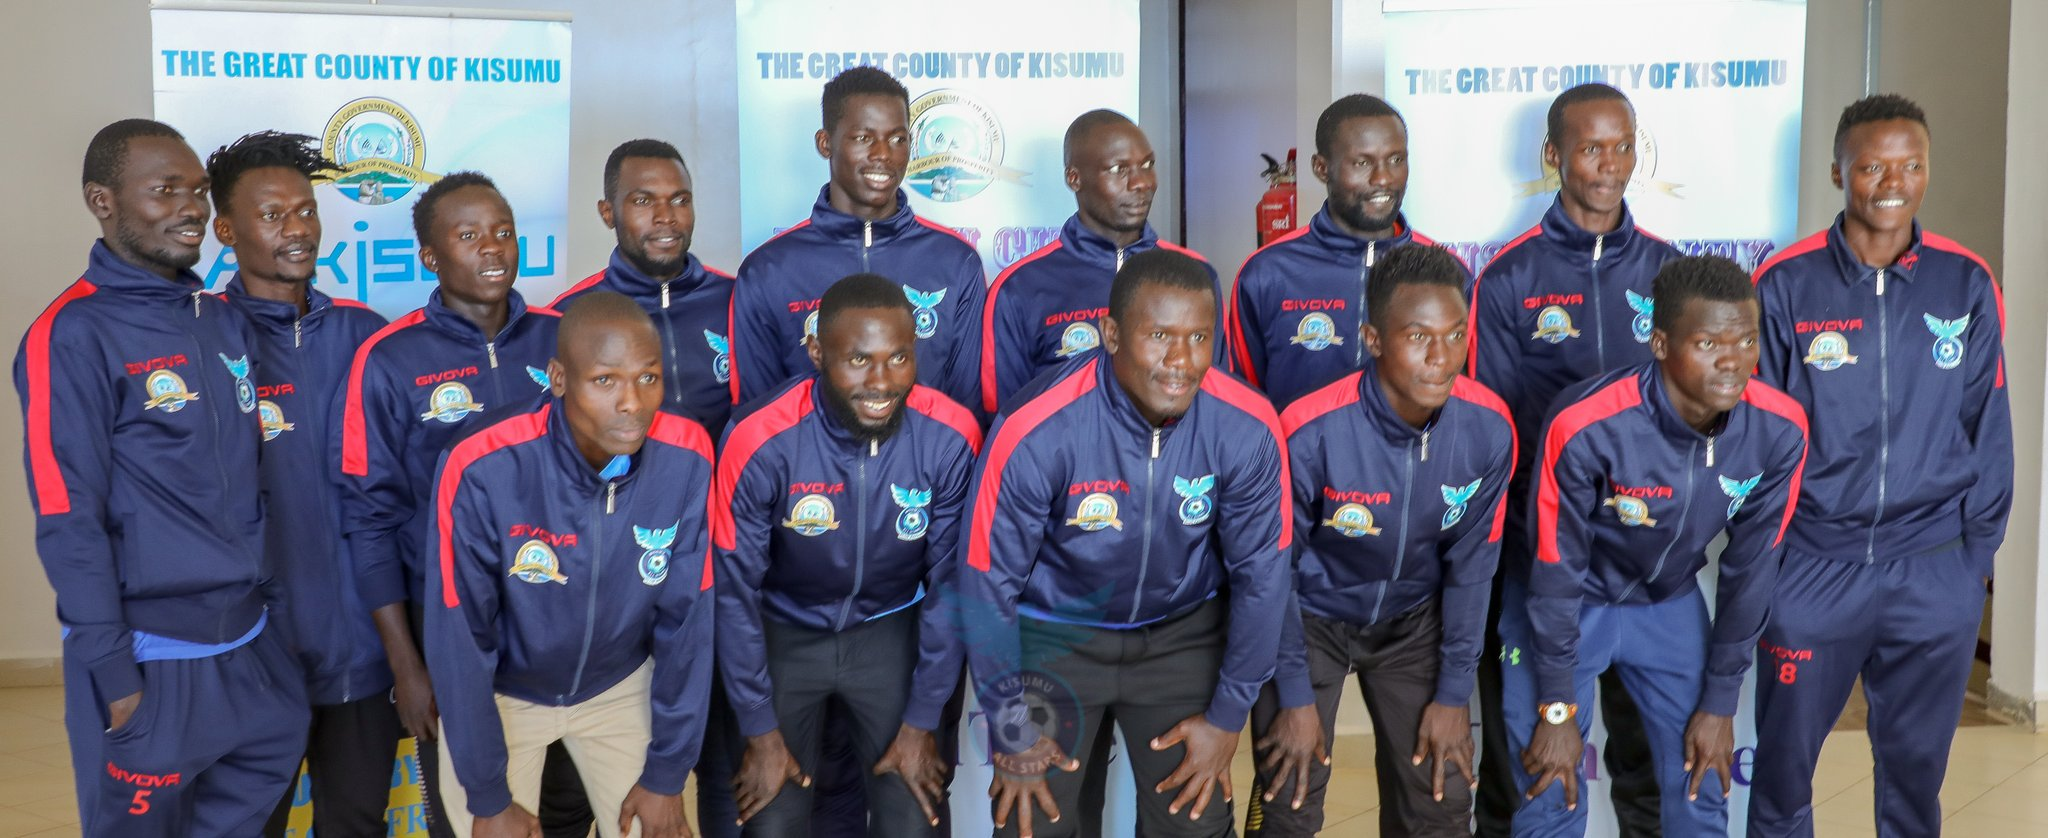 New league entrants Kisumu All-Stars have signed 13 players ahead of the start of the new season. www.businestoday.co.ke